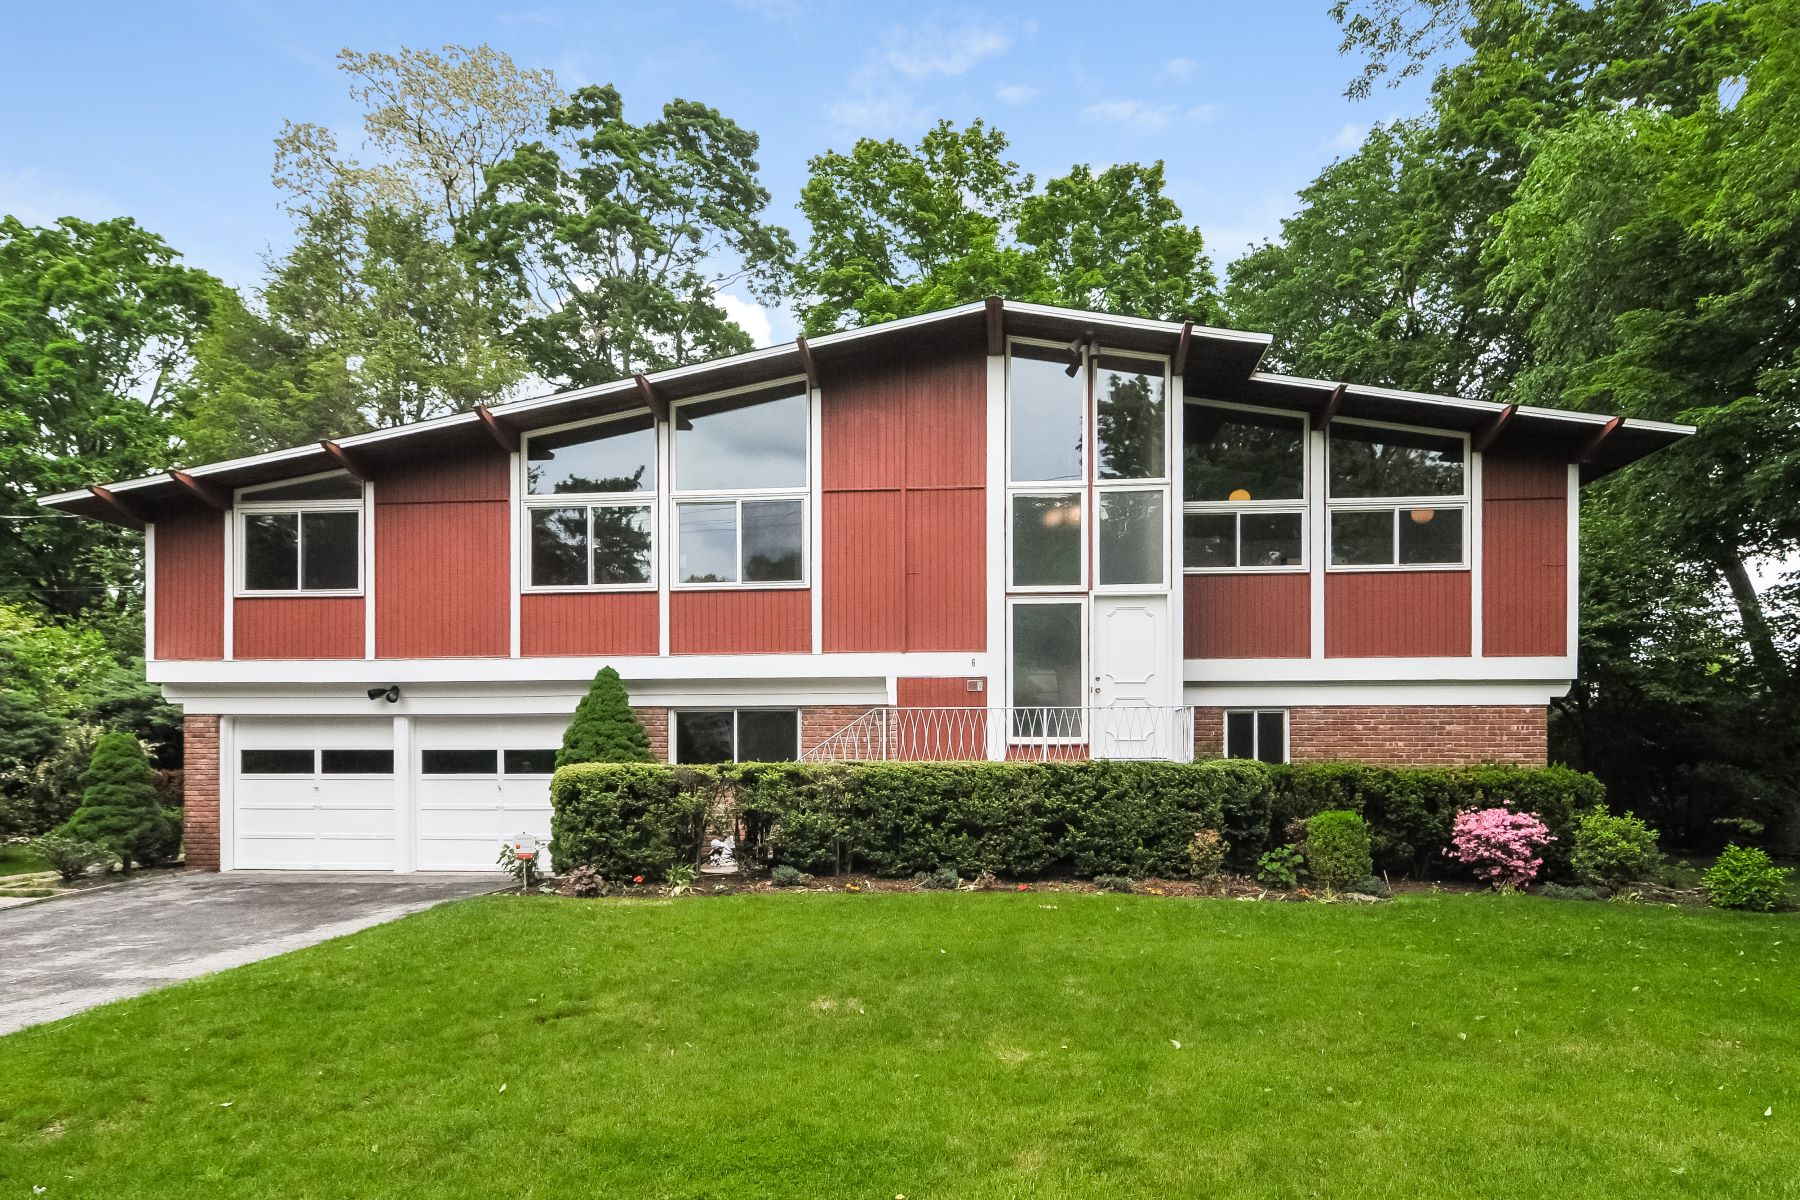 Single Family Home for Rent at 6 Roland Drive 6 Roland Drive White Plains, New York 10605 United States